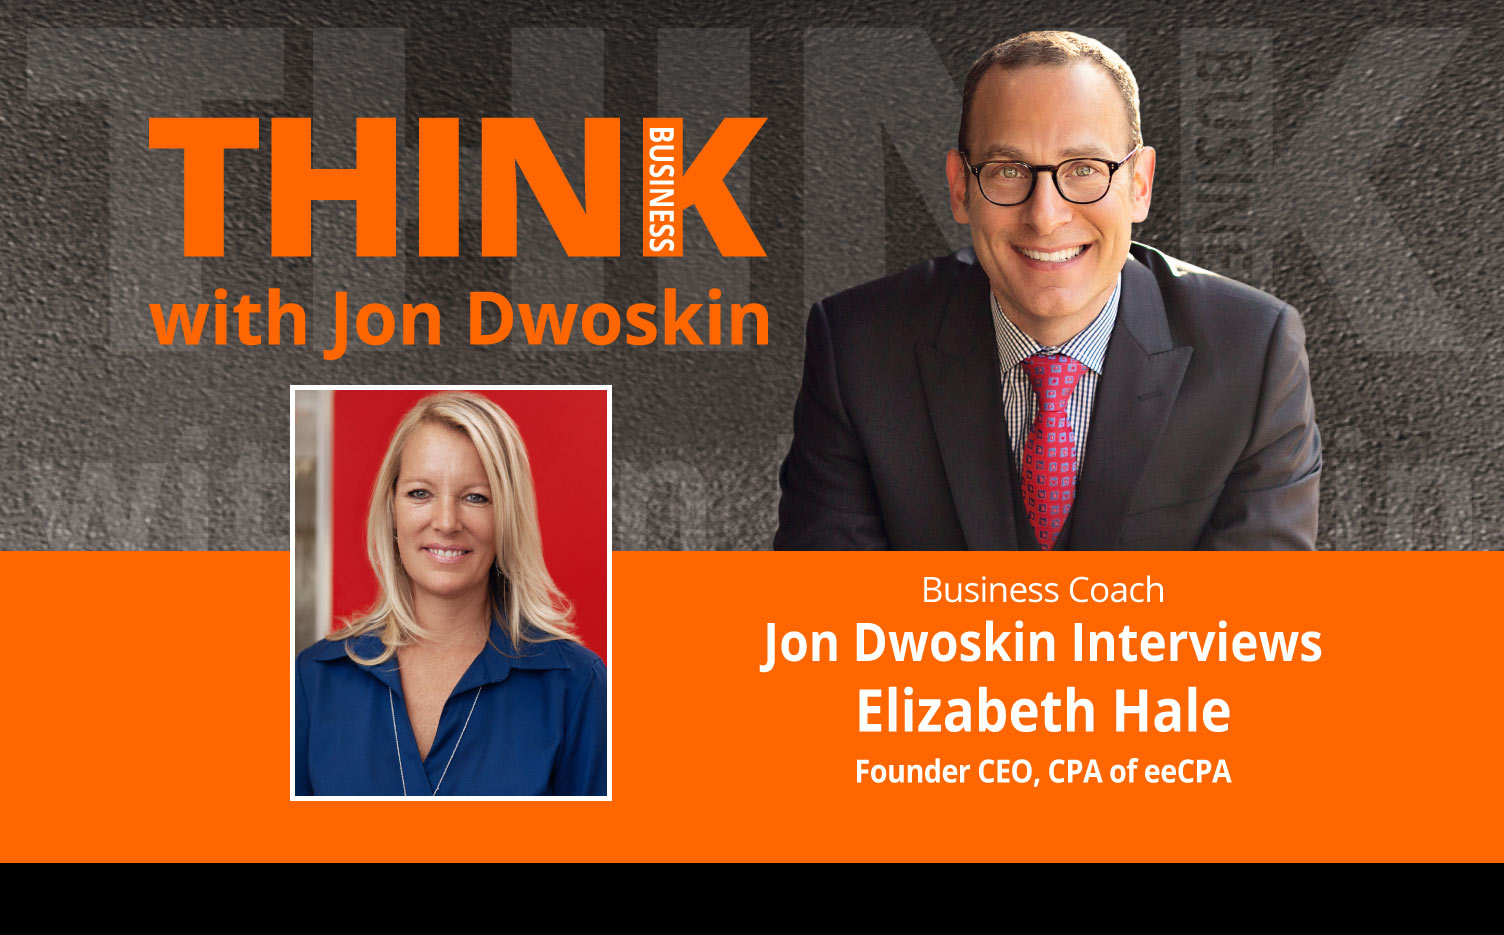 THINK Business Podcast: Jon Dwoskin Interviews Elizabeth Hale, Founder CEO, CPA of eeCPA